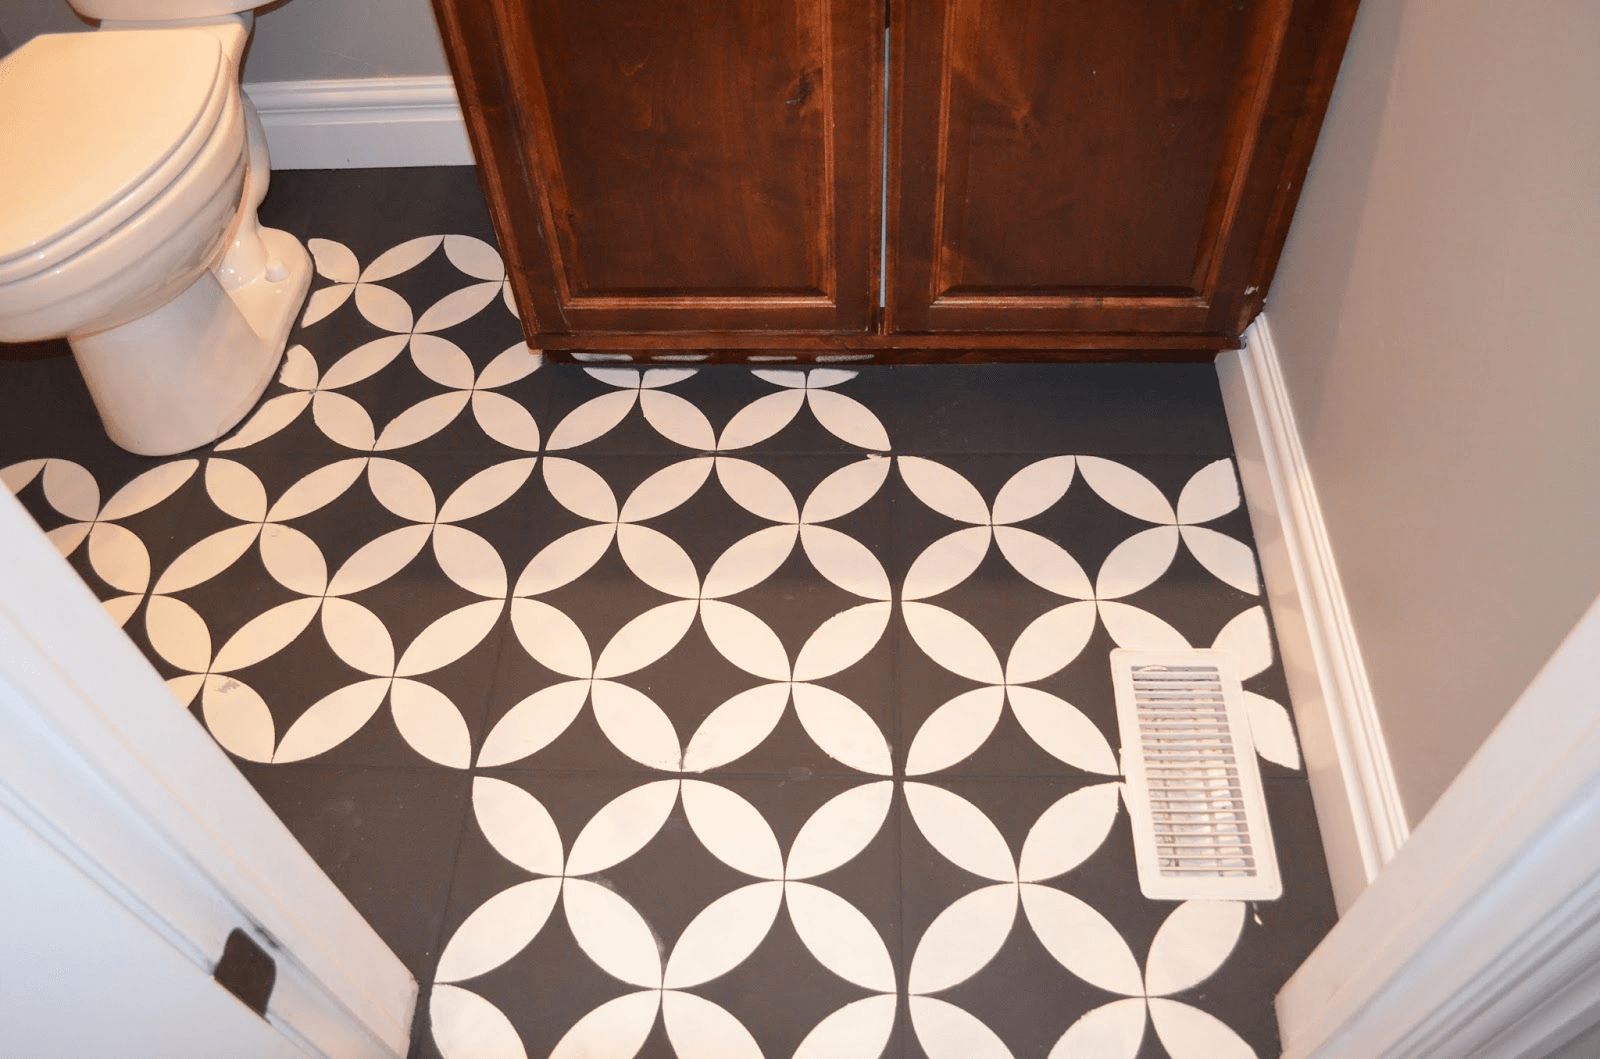 Bathroom painted floor tile ideas